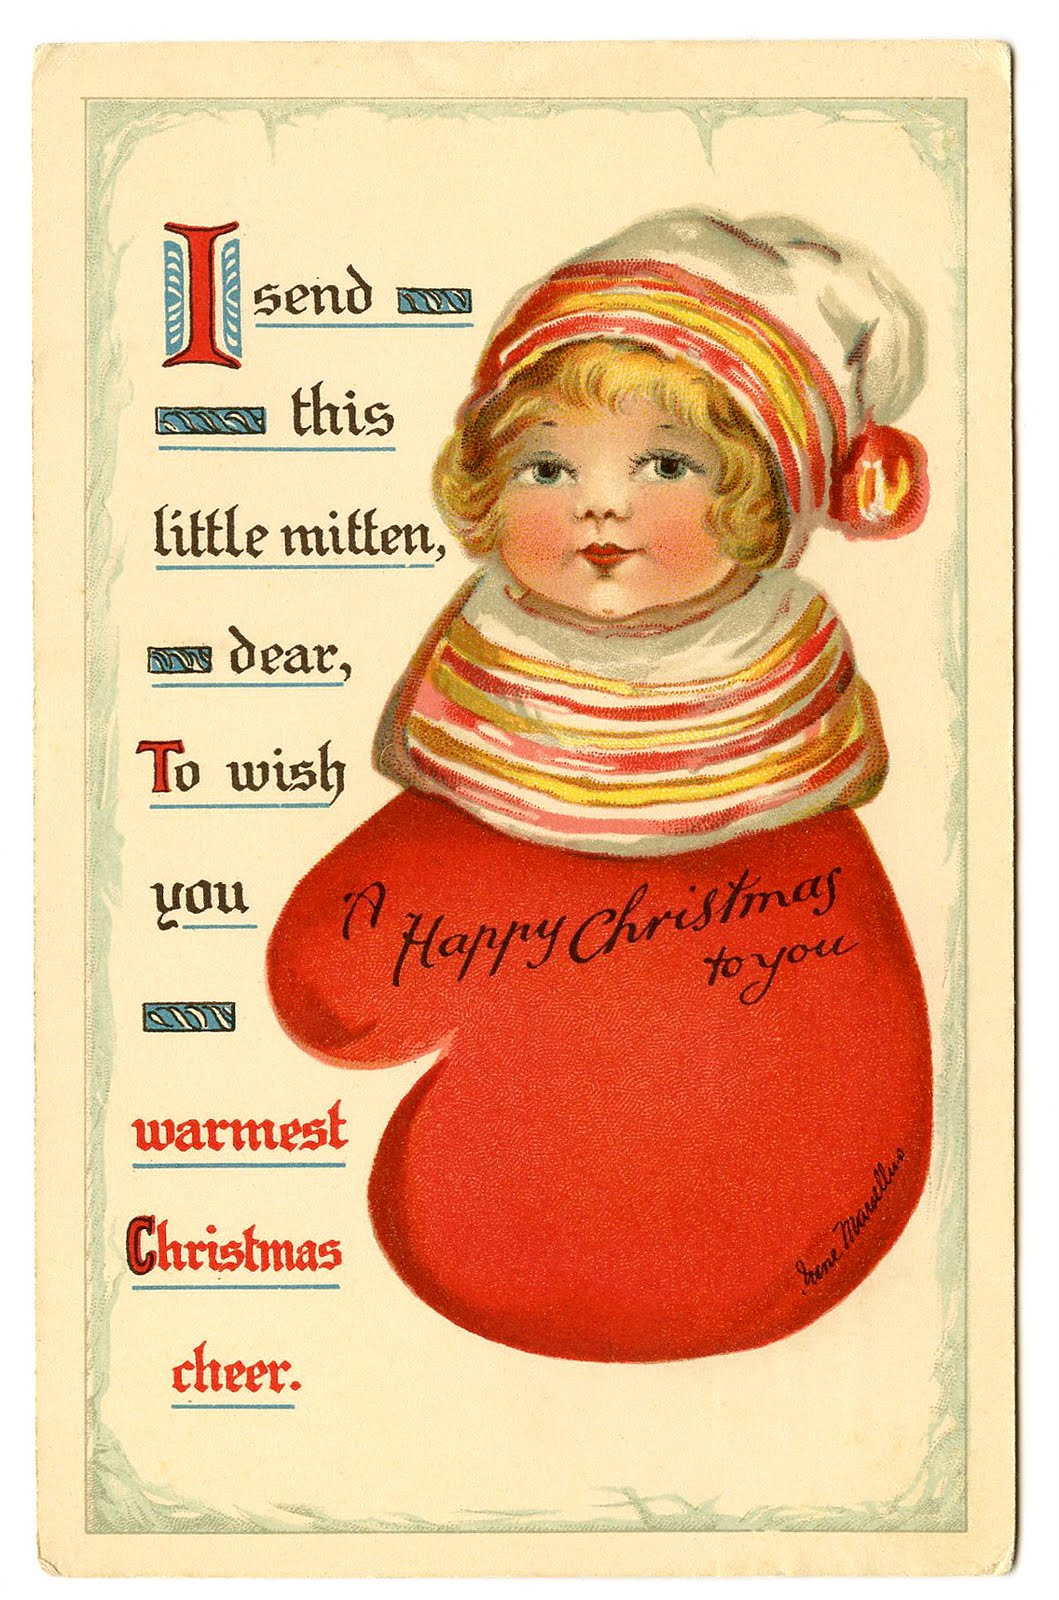 Vintage Christmas Clip Art - Darling Little Mitten Girl - The Graphics ...